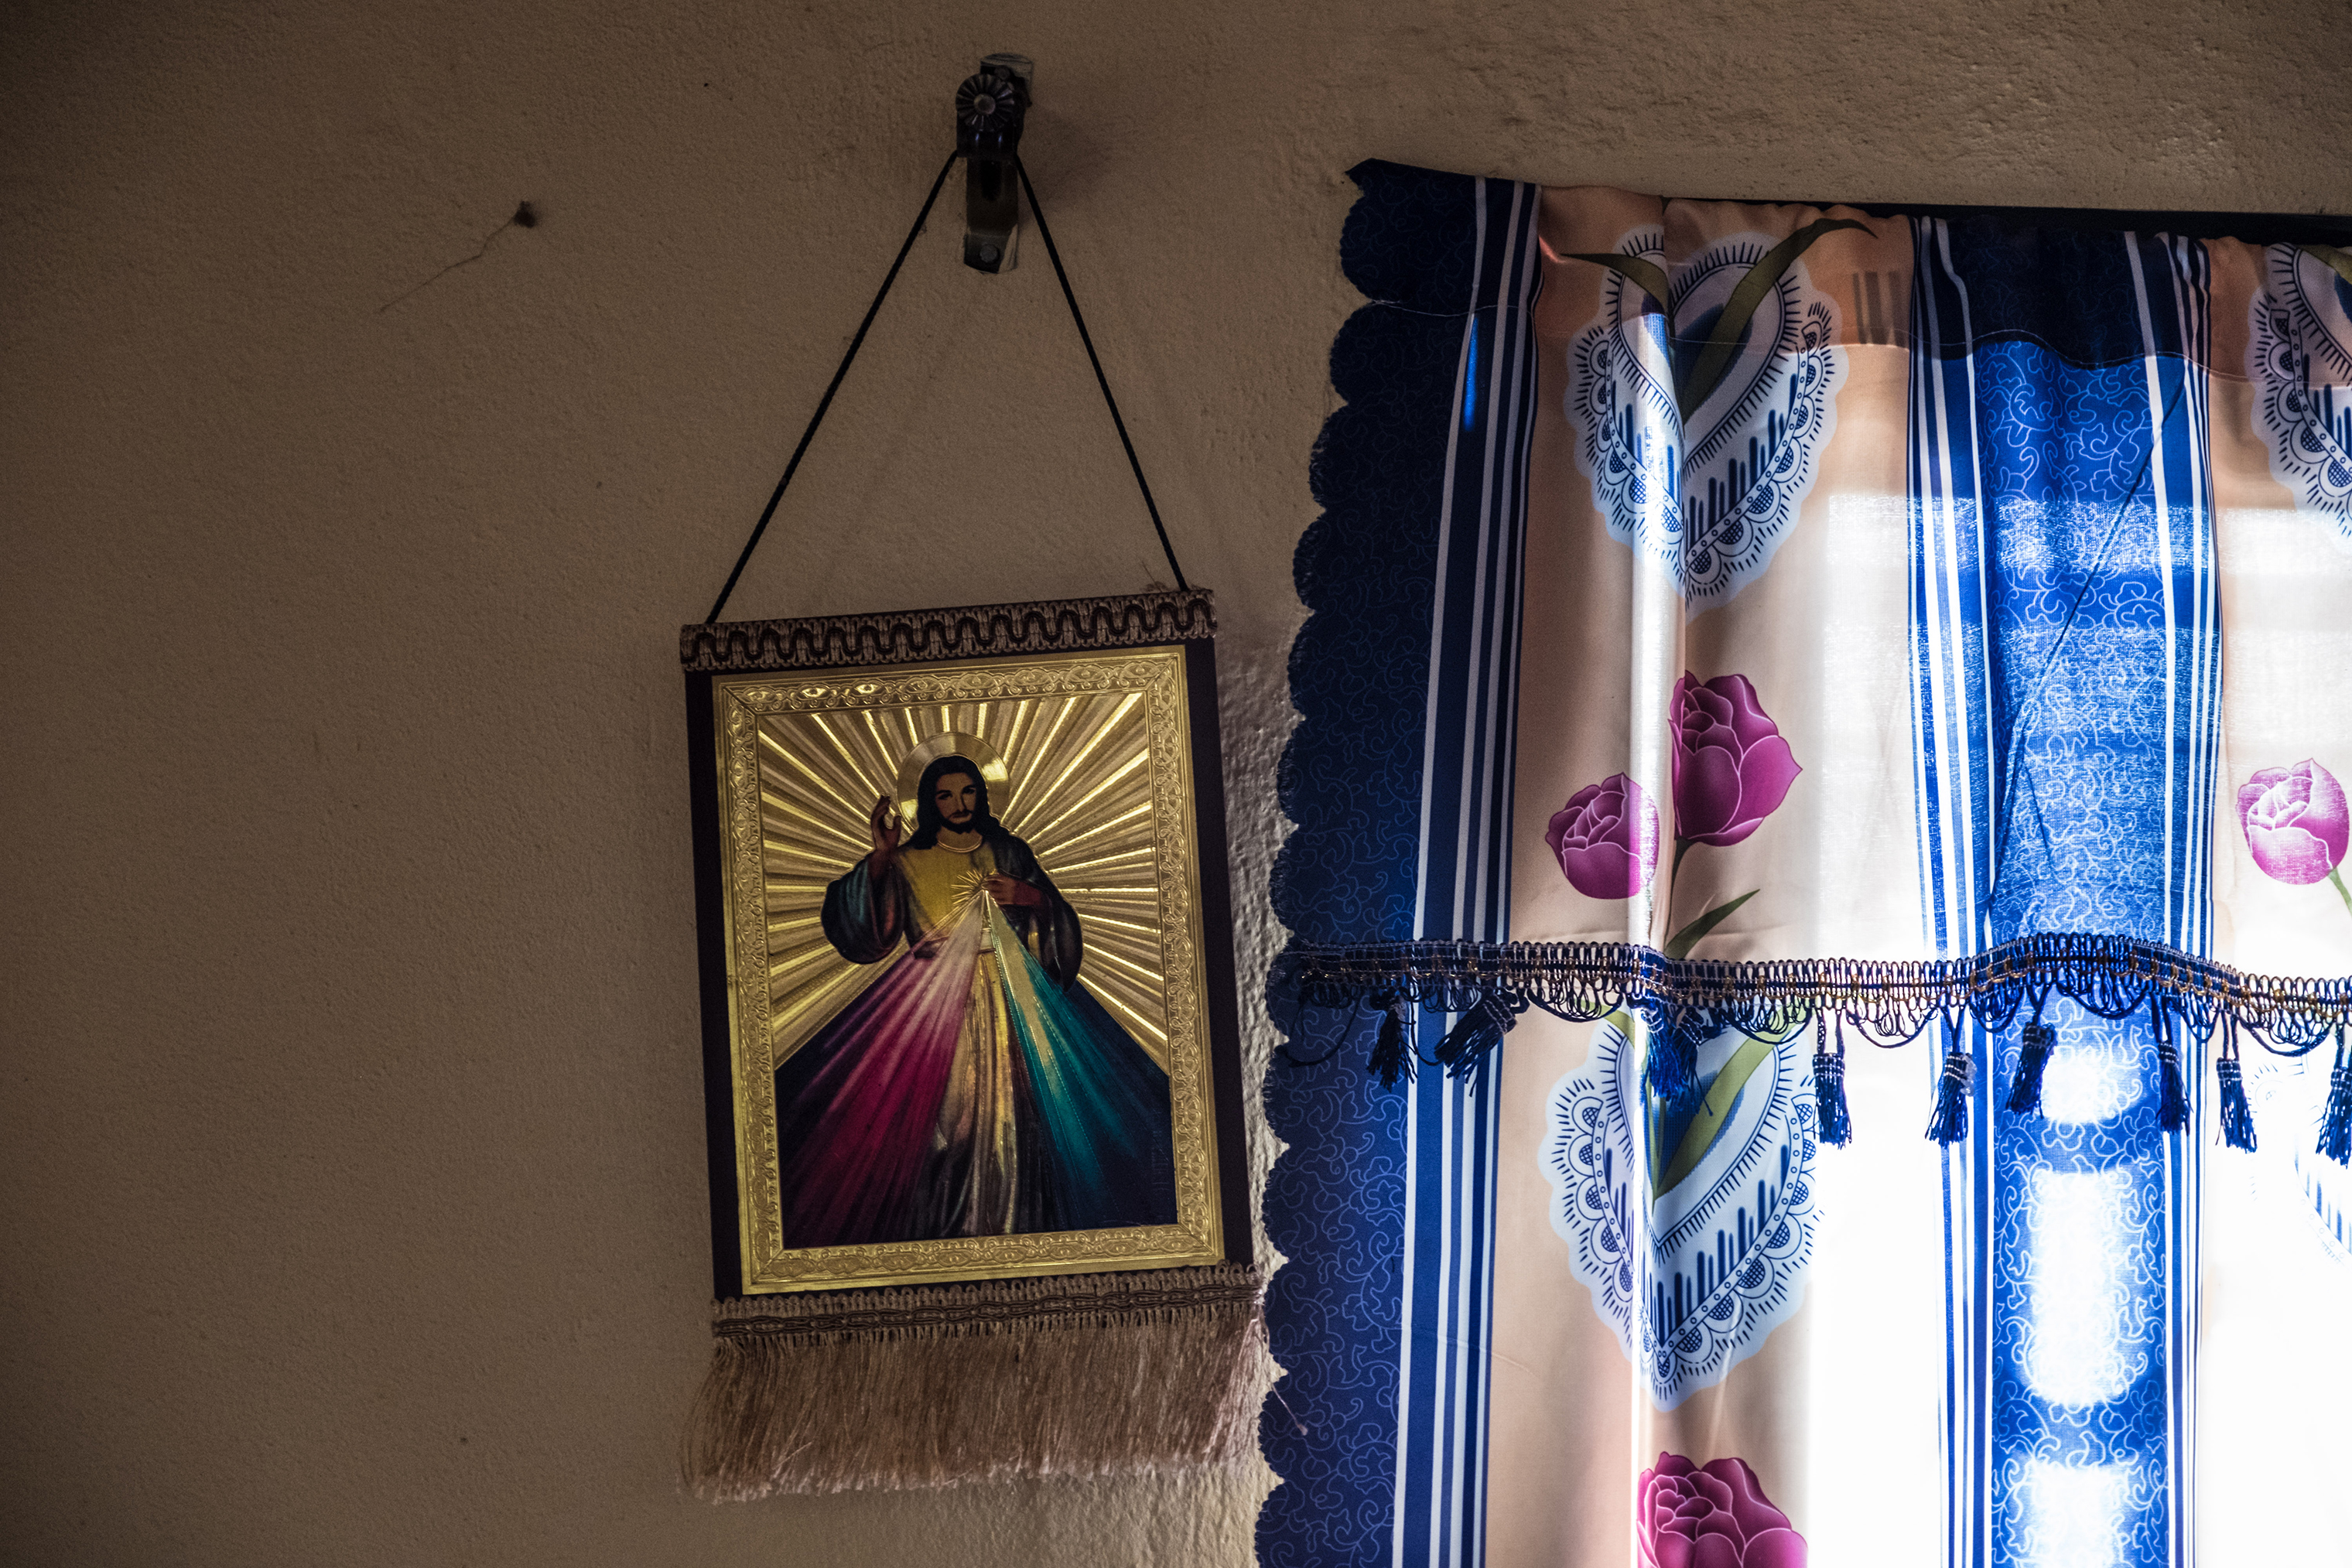 A painting of Jesus hangs on the wall of a building rented by Pastor Emmanuel Momoh, the diamond mining team sponsor.